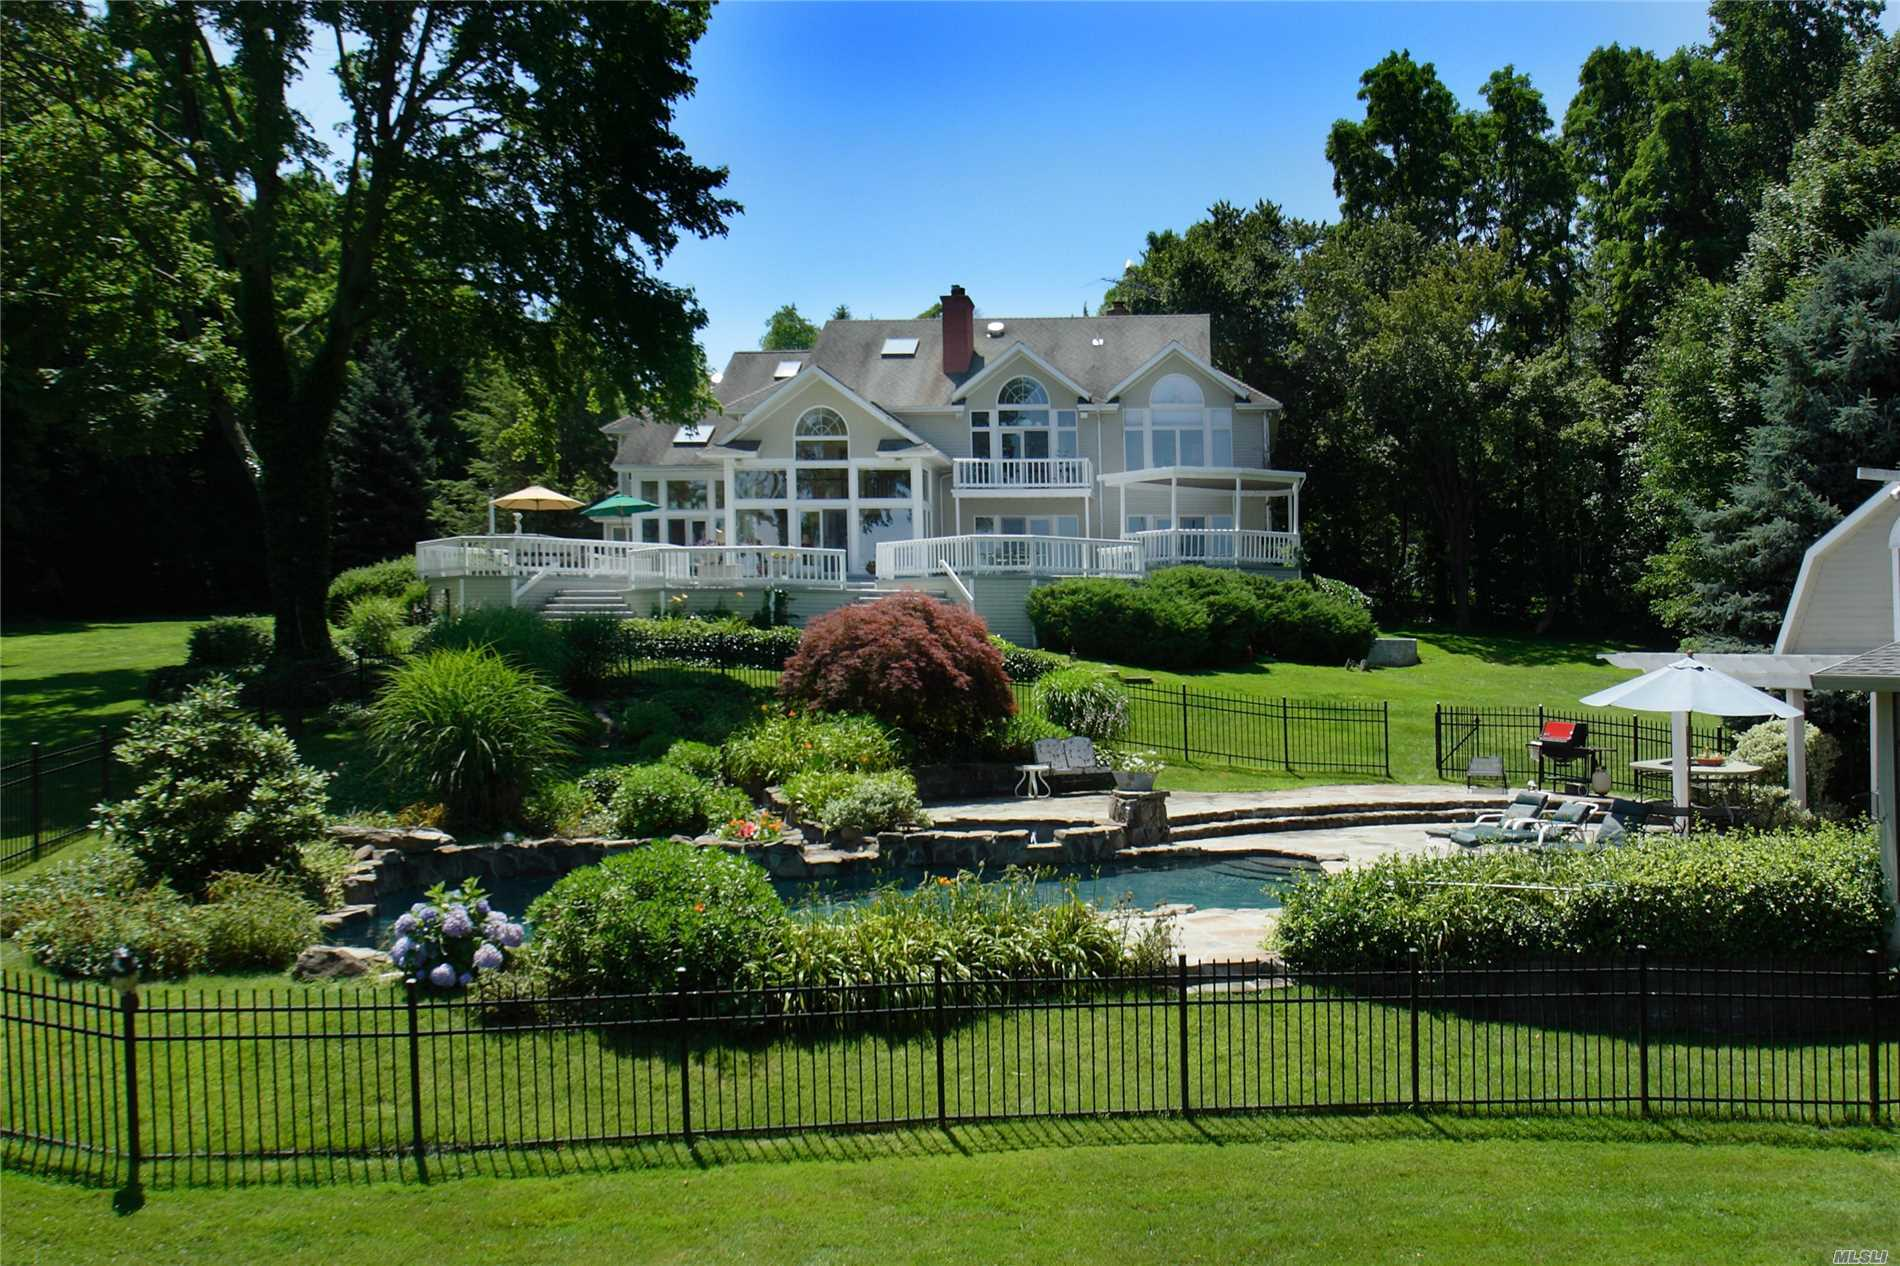 291 Foot Waterfront Property On Puppy Cove. Magnificent Water Views From All Major Rooms! Stunning Architectural Design W/Open Floor Plan. Multi-Level Decking Plus Poolside Cabana. Completely Private And Breathtaking Setting In The Incorporated Village Of Lloyd Harbor W/ Cold Spring Harbor Schools. Convenient To Schools, Villages, Parks, Beaches & Boating, Shopping And Transportation. Outstanding Location!